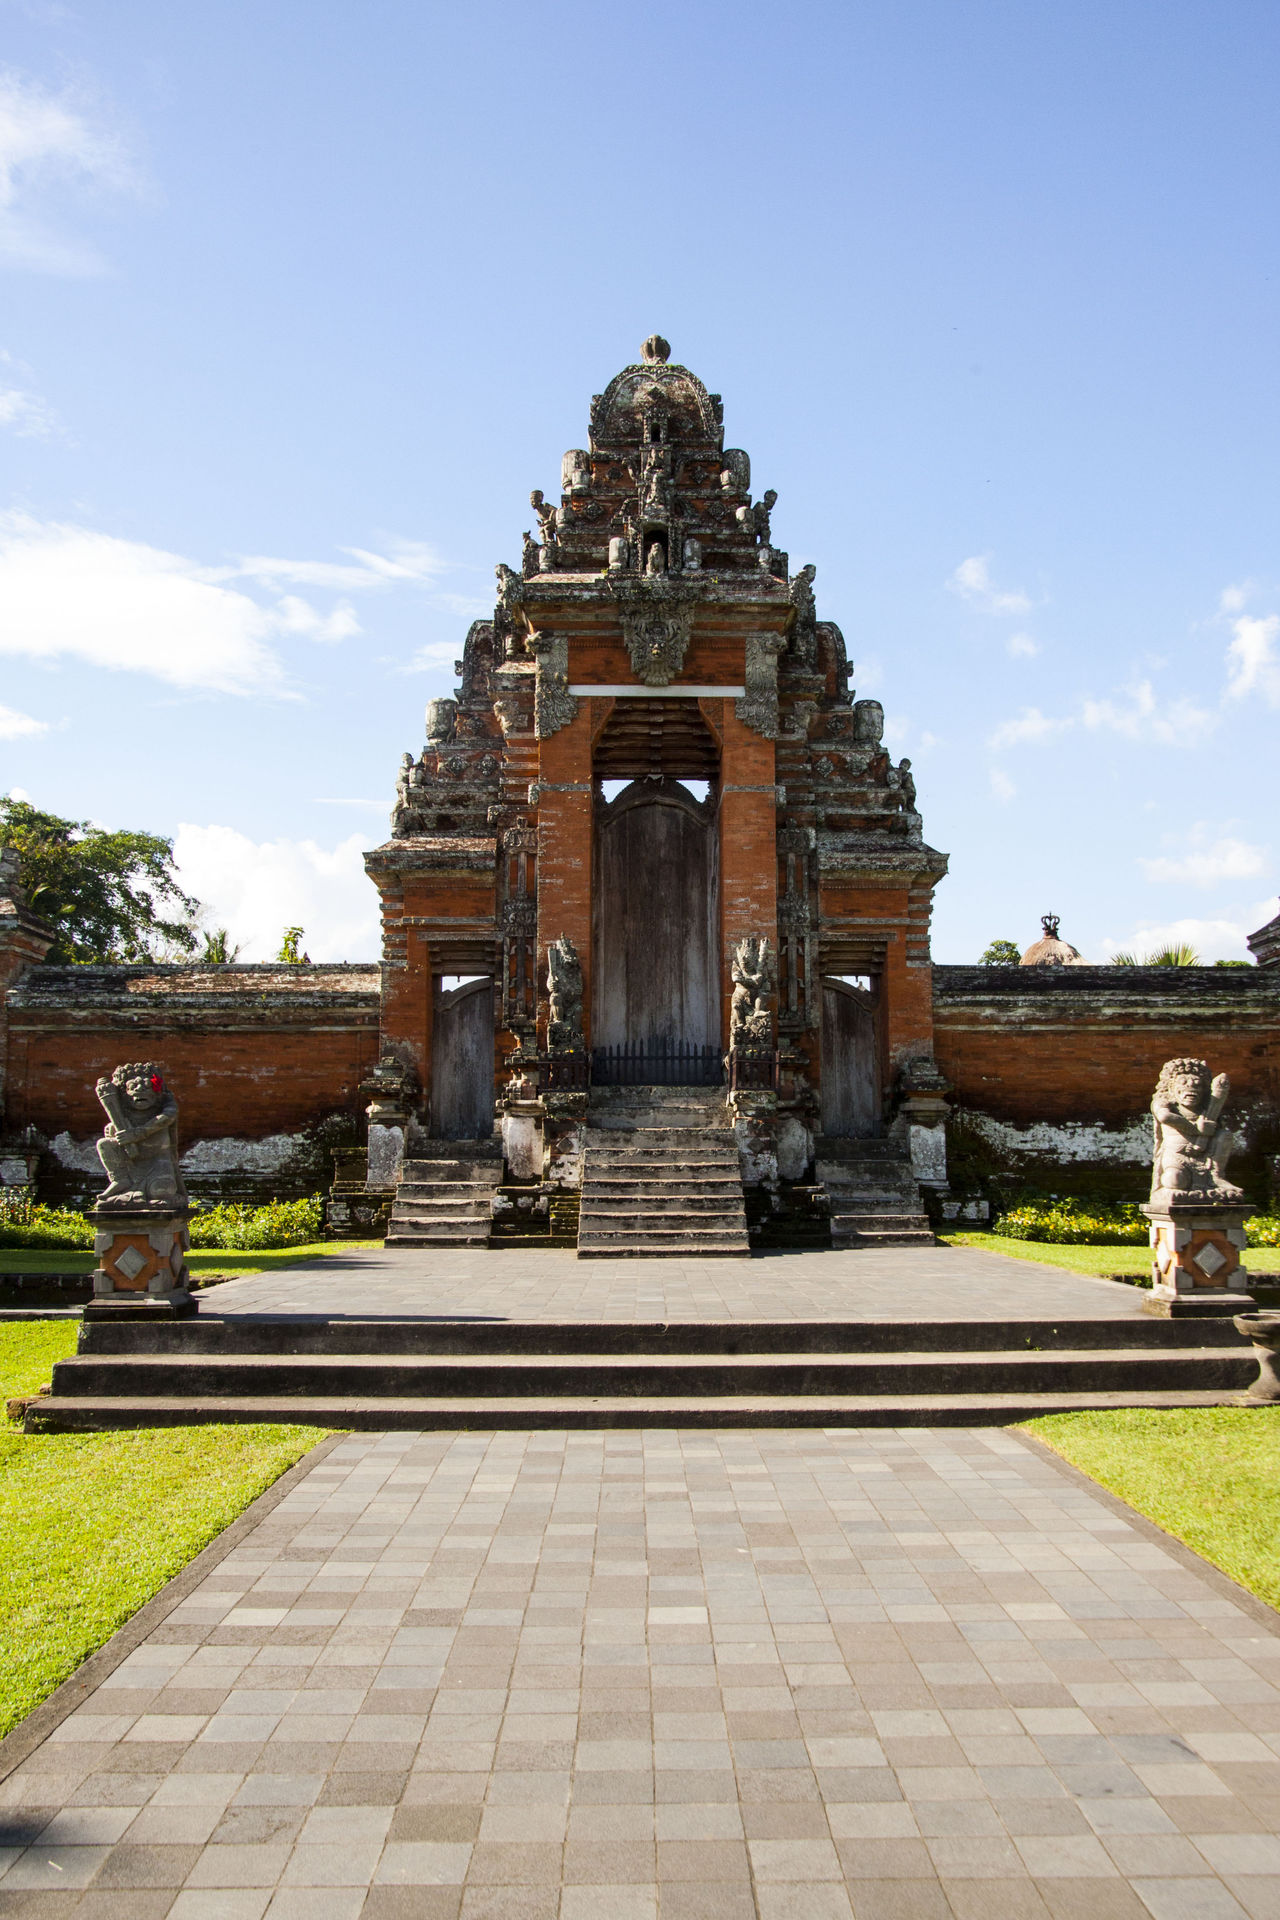 Architecture Bali Building Exterior Built Structure Day Indonesia_photography Place Of Worship Religion Sculpture Sky Statue The Secret Spaces Travel Destinations Live For The Story